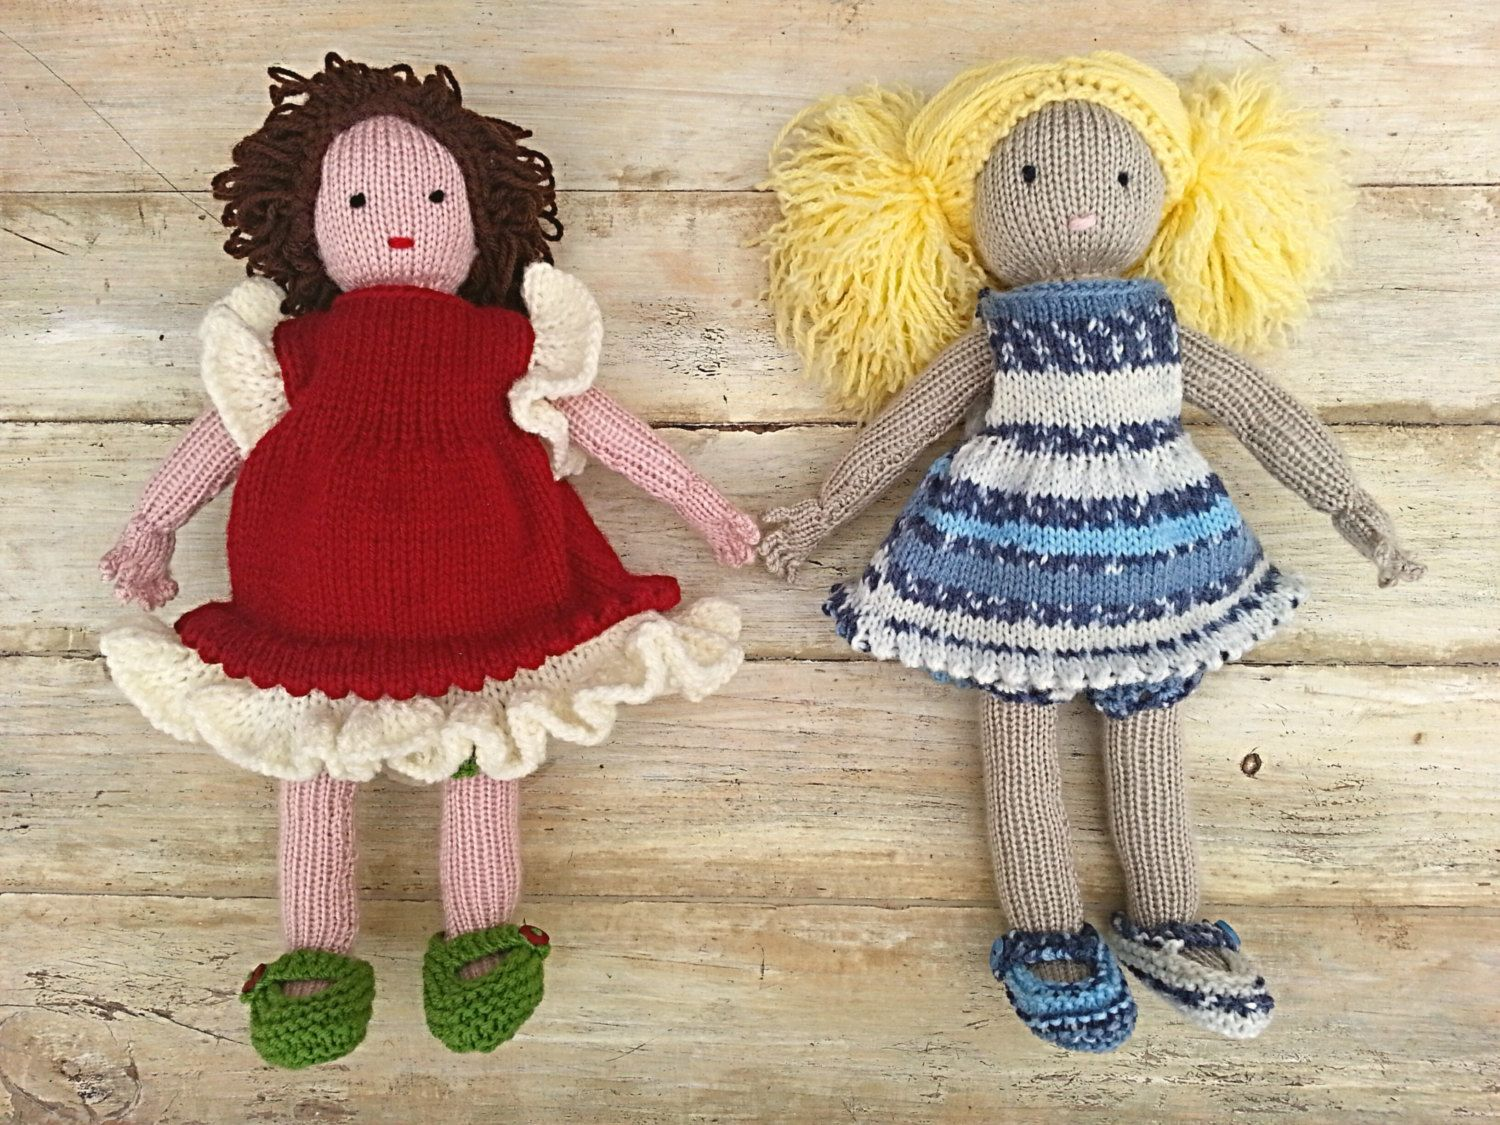 KNITTING PATTERN, Doll, Softies, Dress Up Doll, Knit Doll Pattern, Girls Toy Doll, Waldorf Doll, Toddler Toy, Snow White and Rose Red by heaventoseven on Etsy